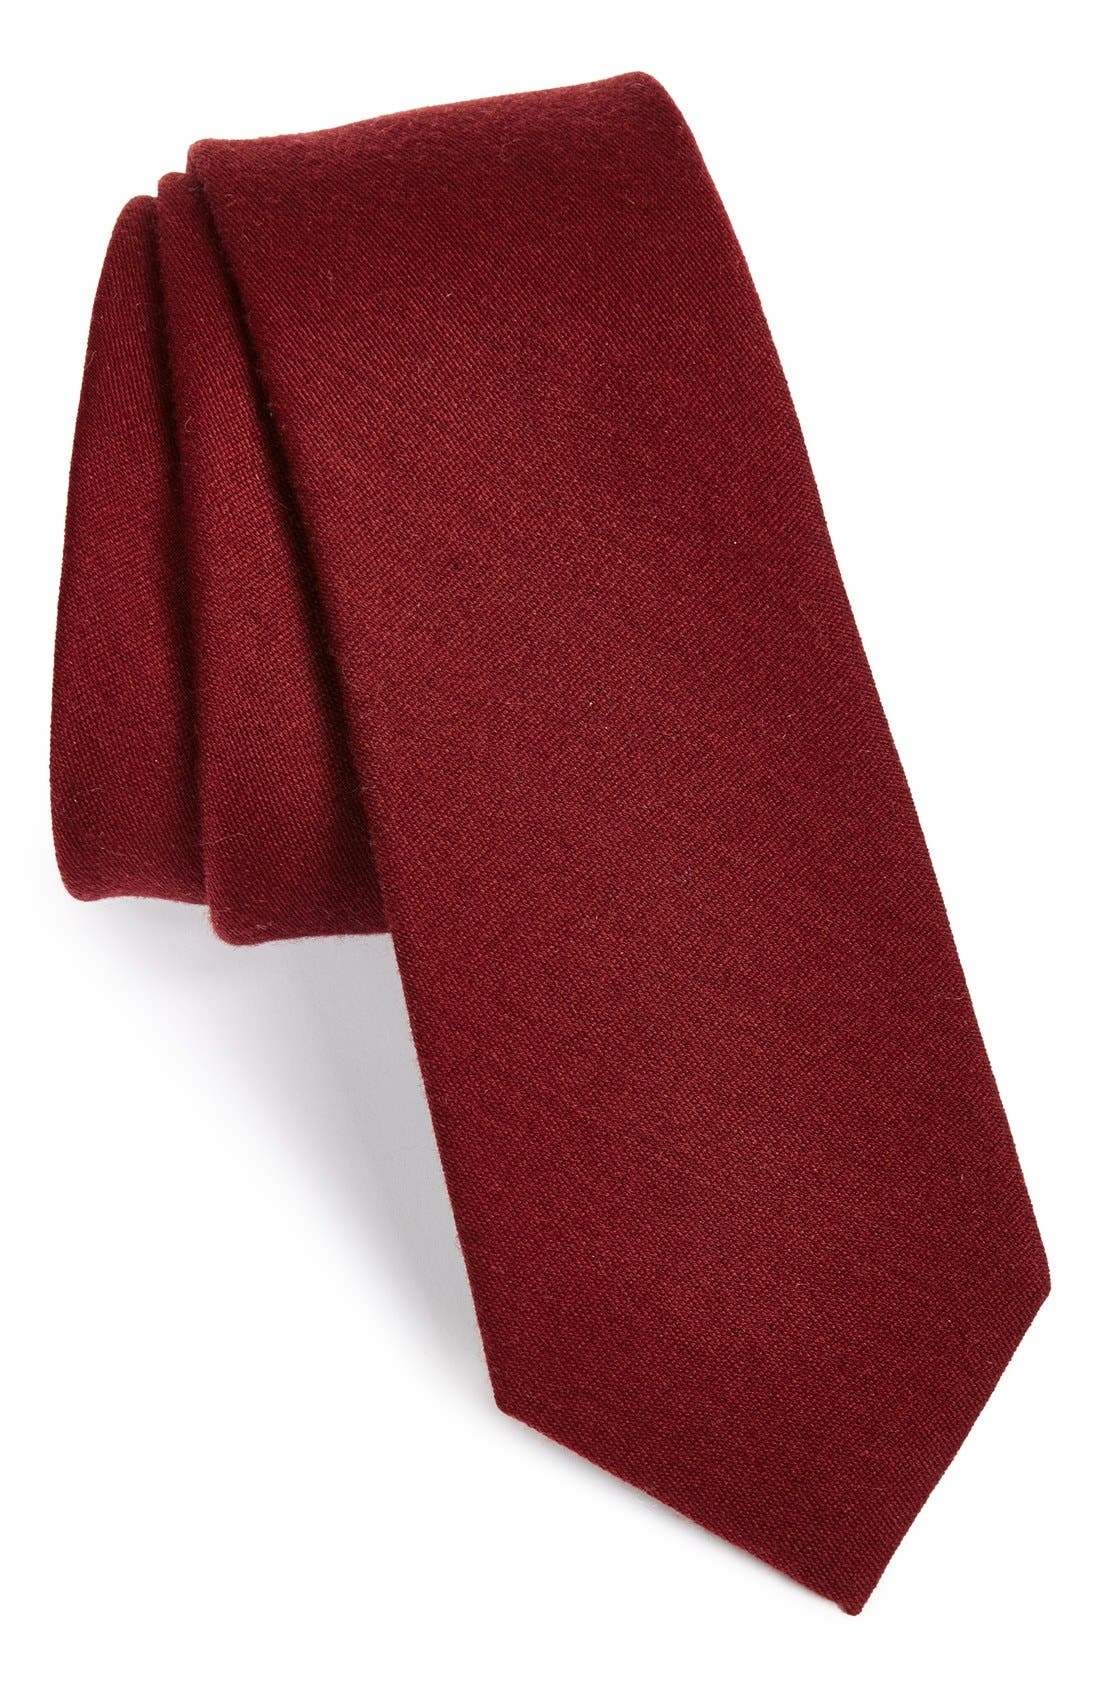 Wool & Silk Solid Tie,                             Main thumbnail 1, color,                             Burgundy